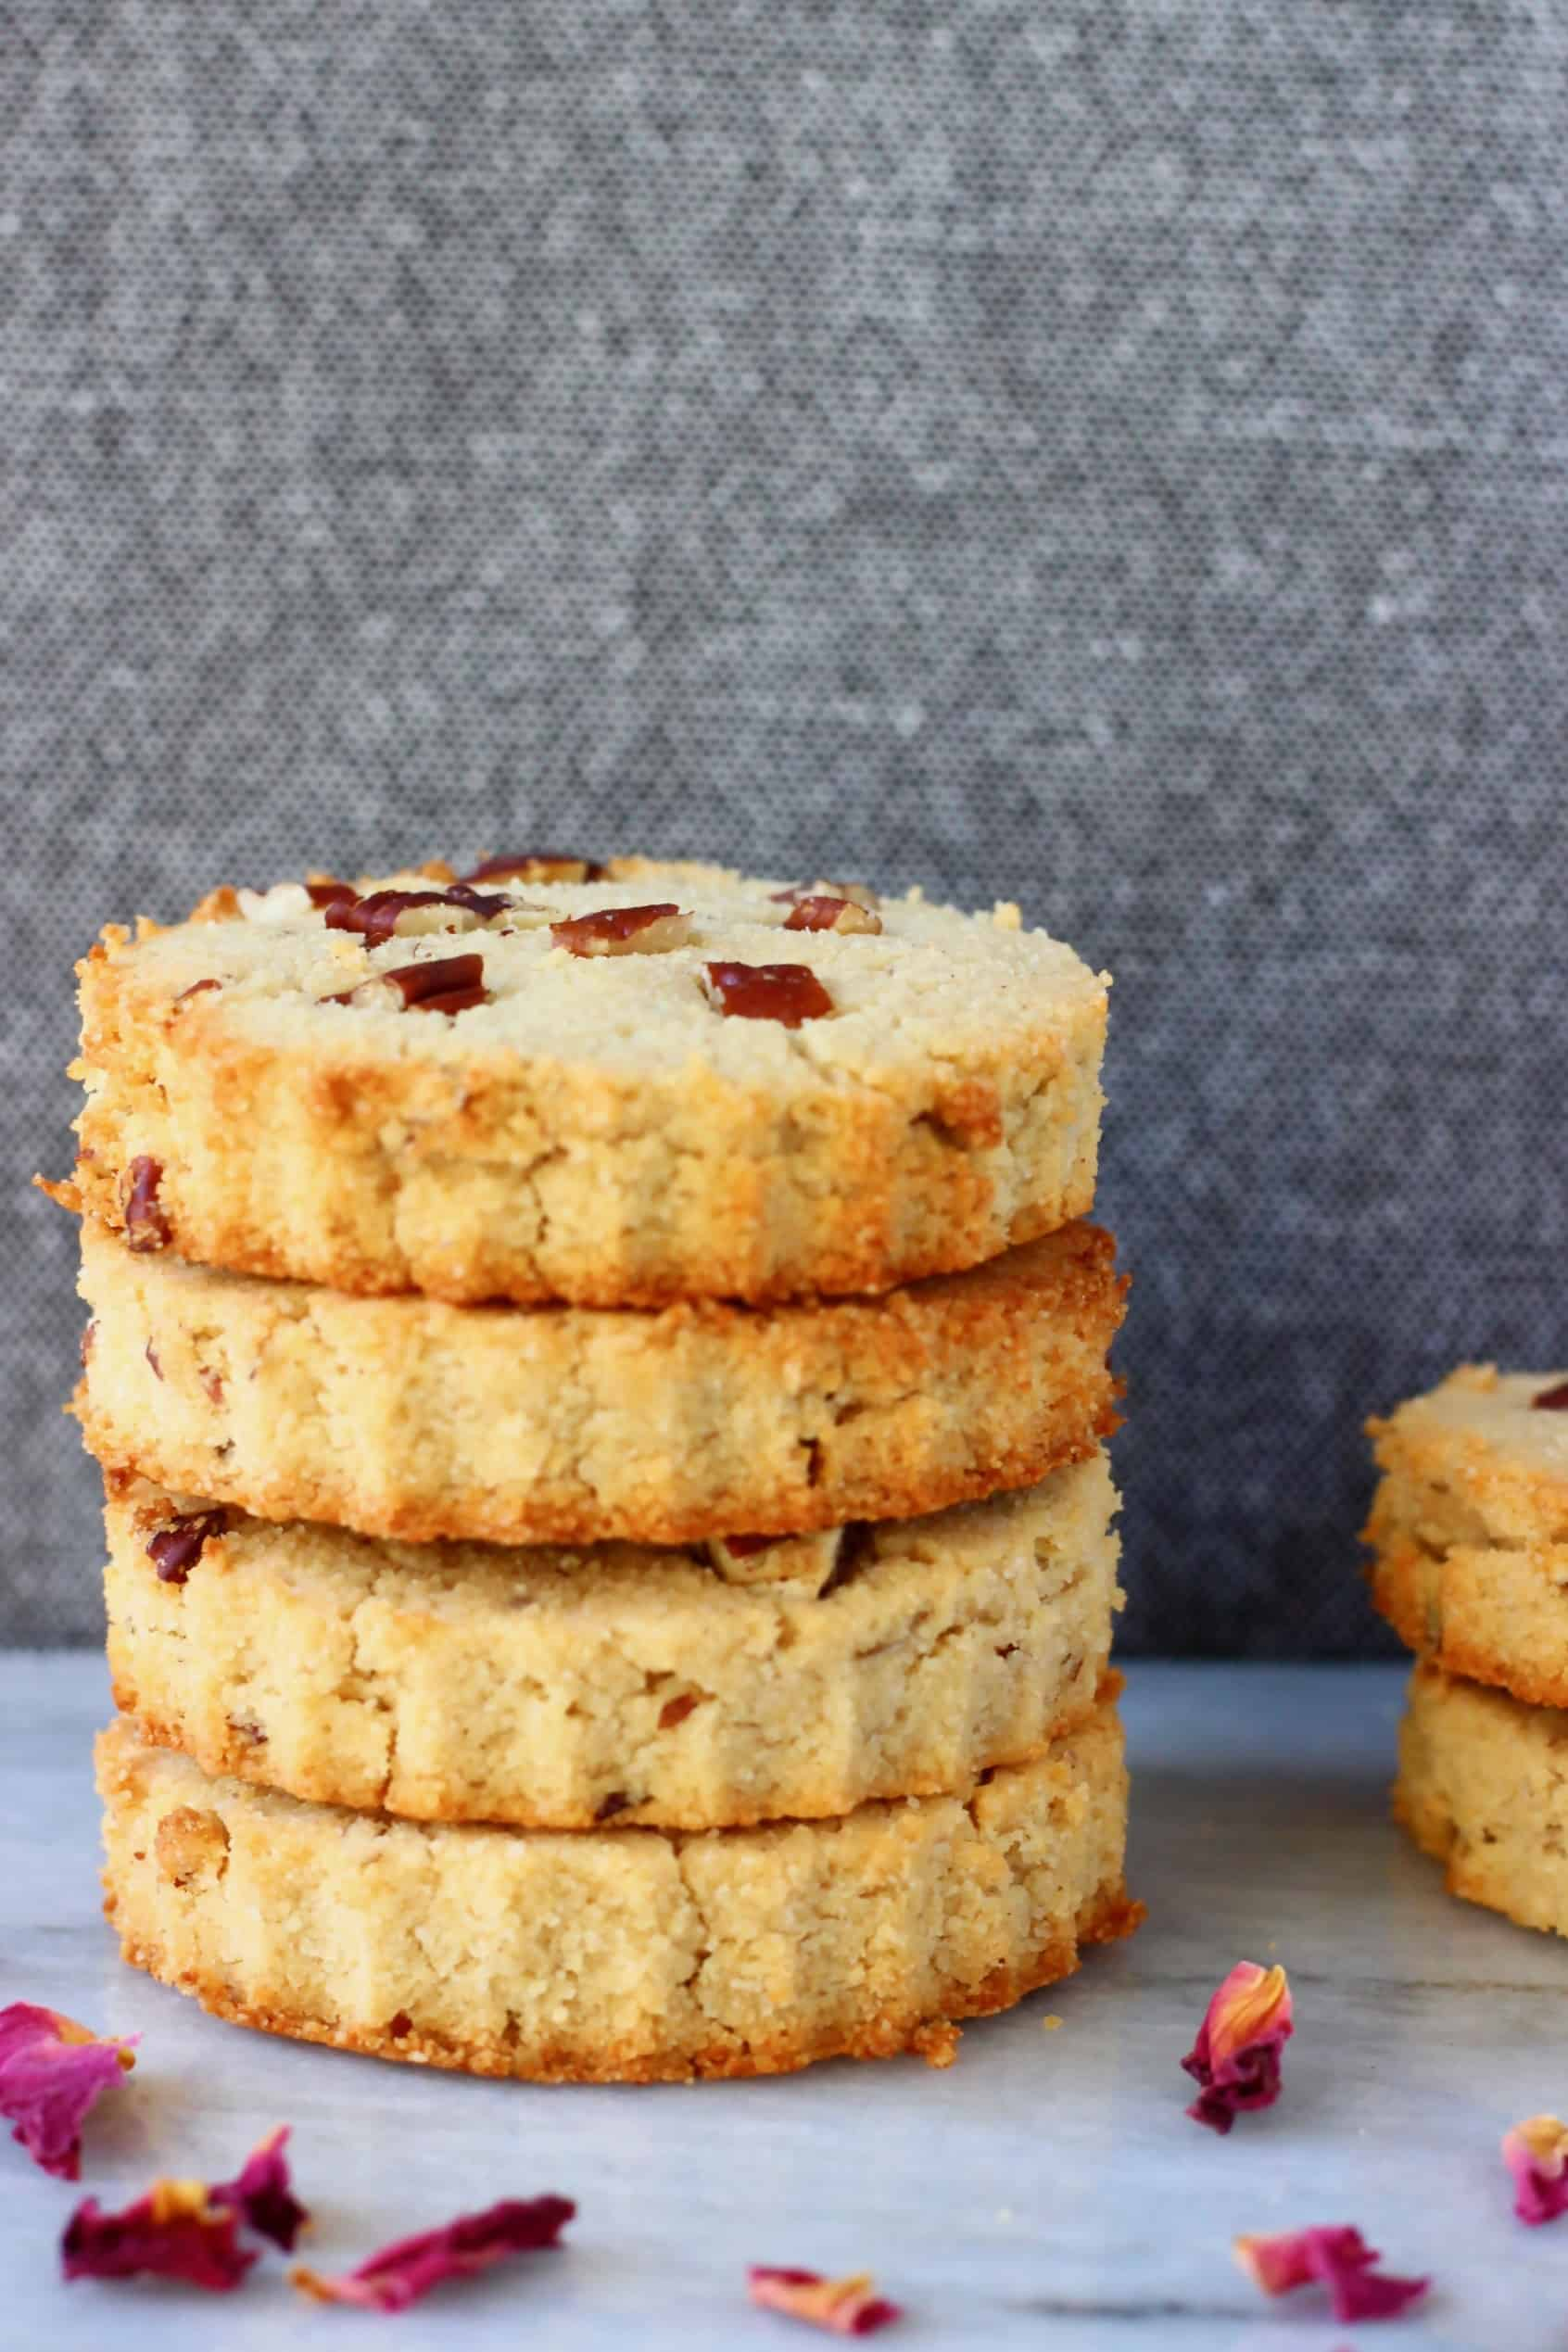 Four circular coconut flour cookies with pecan nuts stacked up on a marble slab against a grey background scattered with rose petals